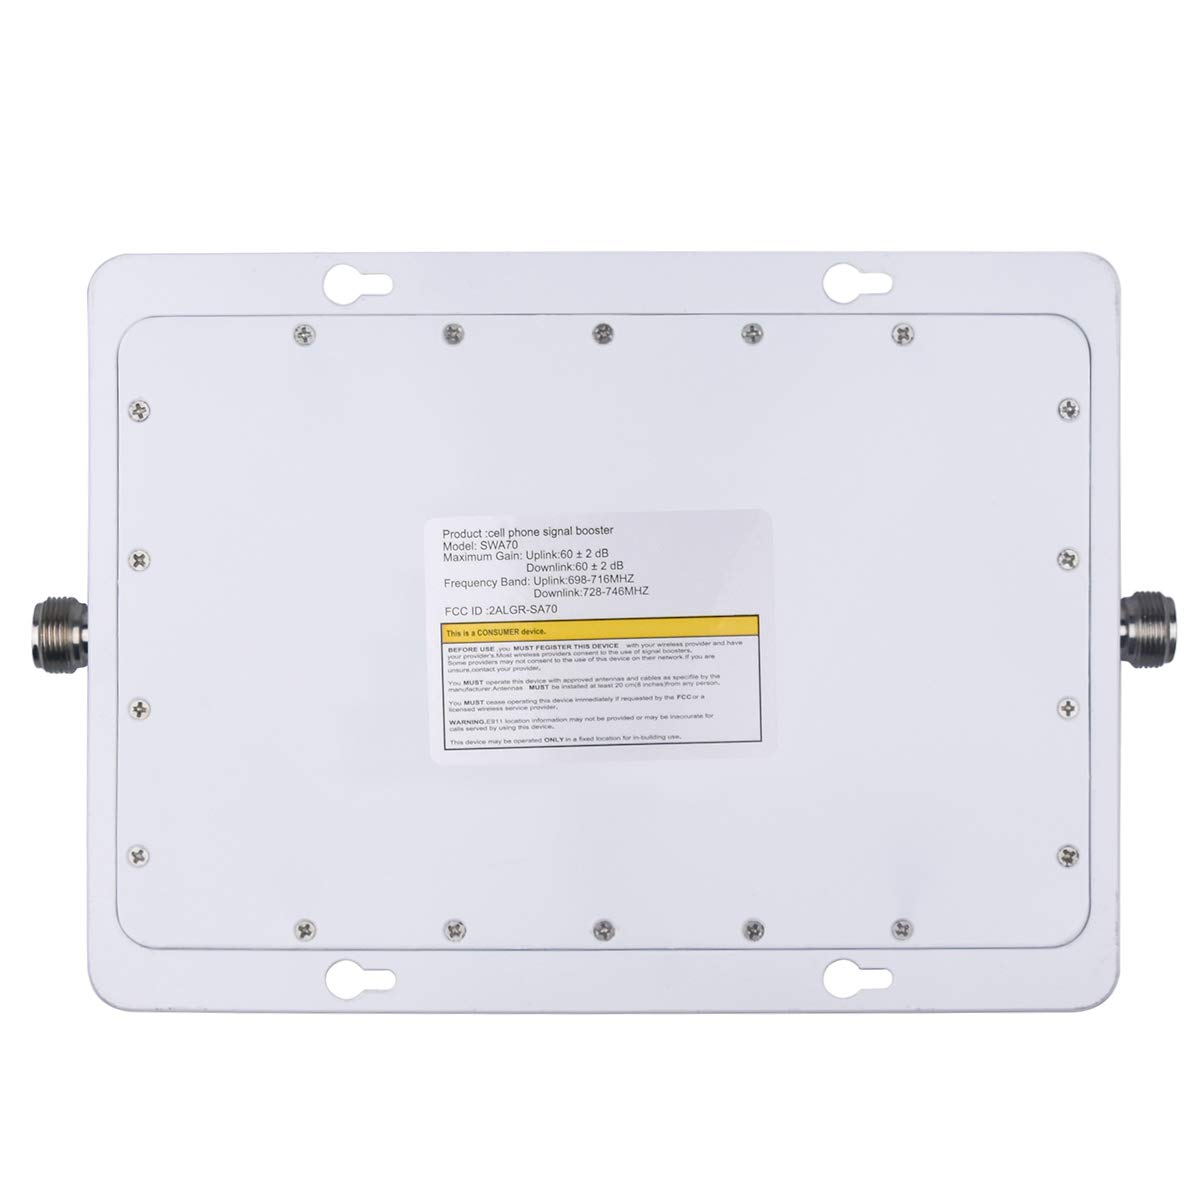 ATT Cell Phone Signal Booster 4G LTE Mobile Signal Booster Amplifier FDD AT/&T T-Mobile Cell Signal Booster Repeater 700MHz Band 12//17 for Home Coverage Upto 5,000 Sq Ft Panel Yagi Antennas